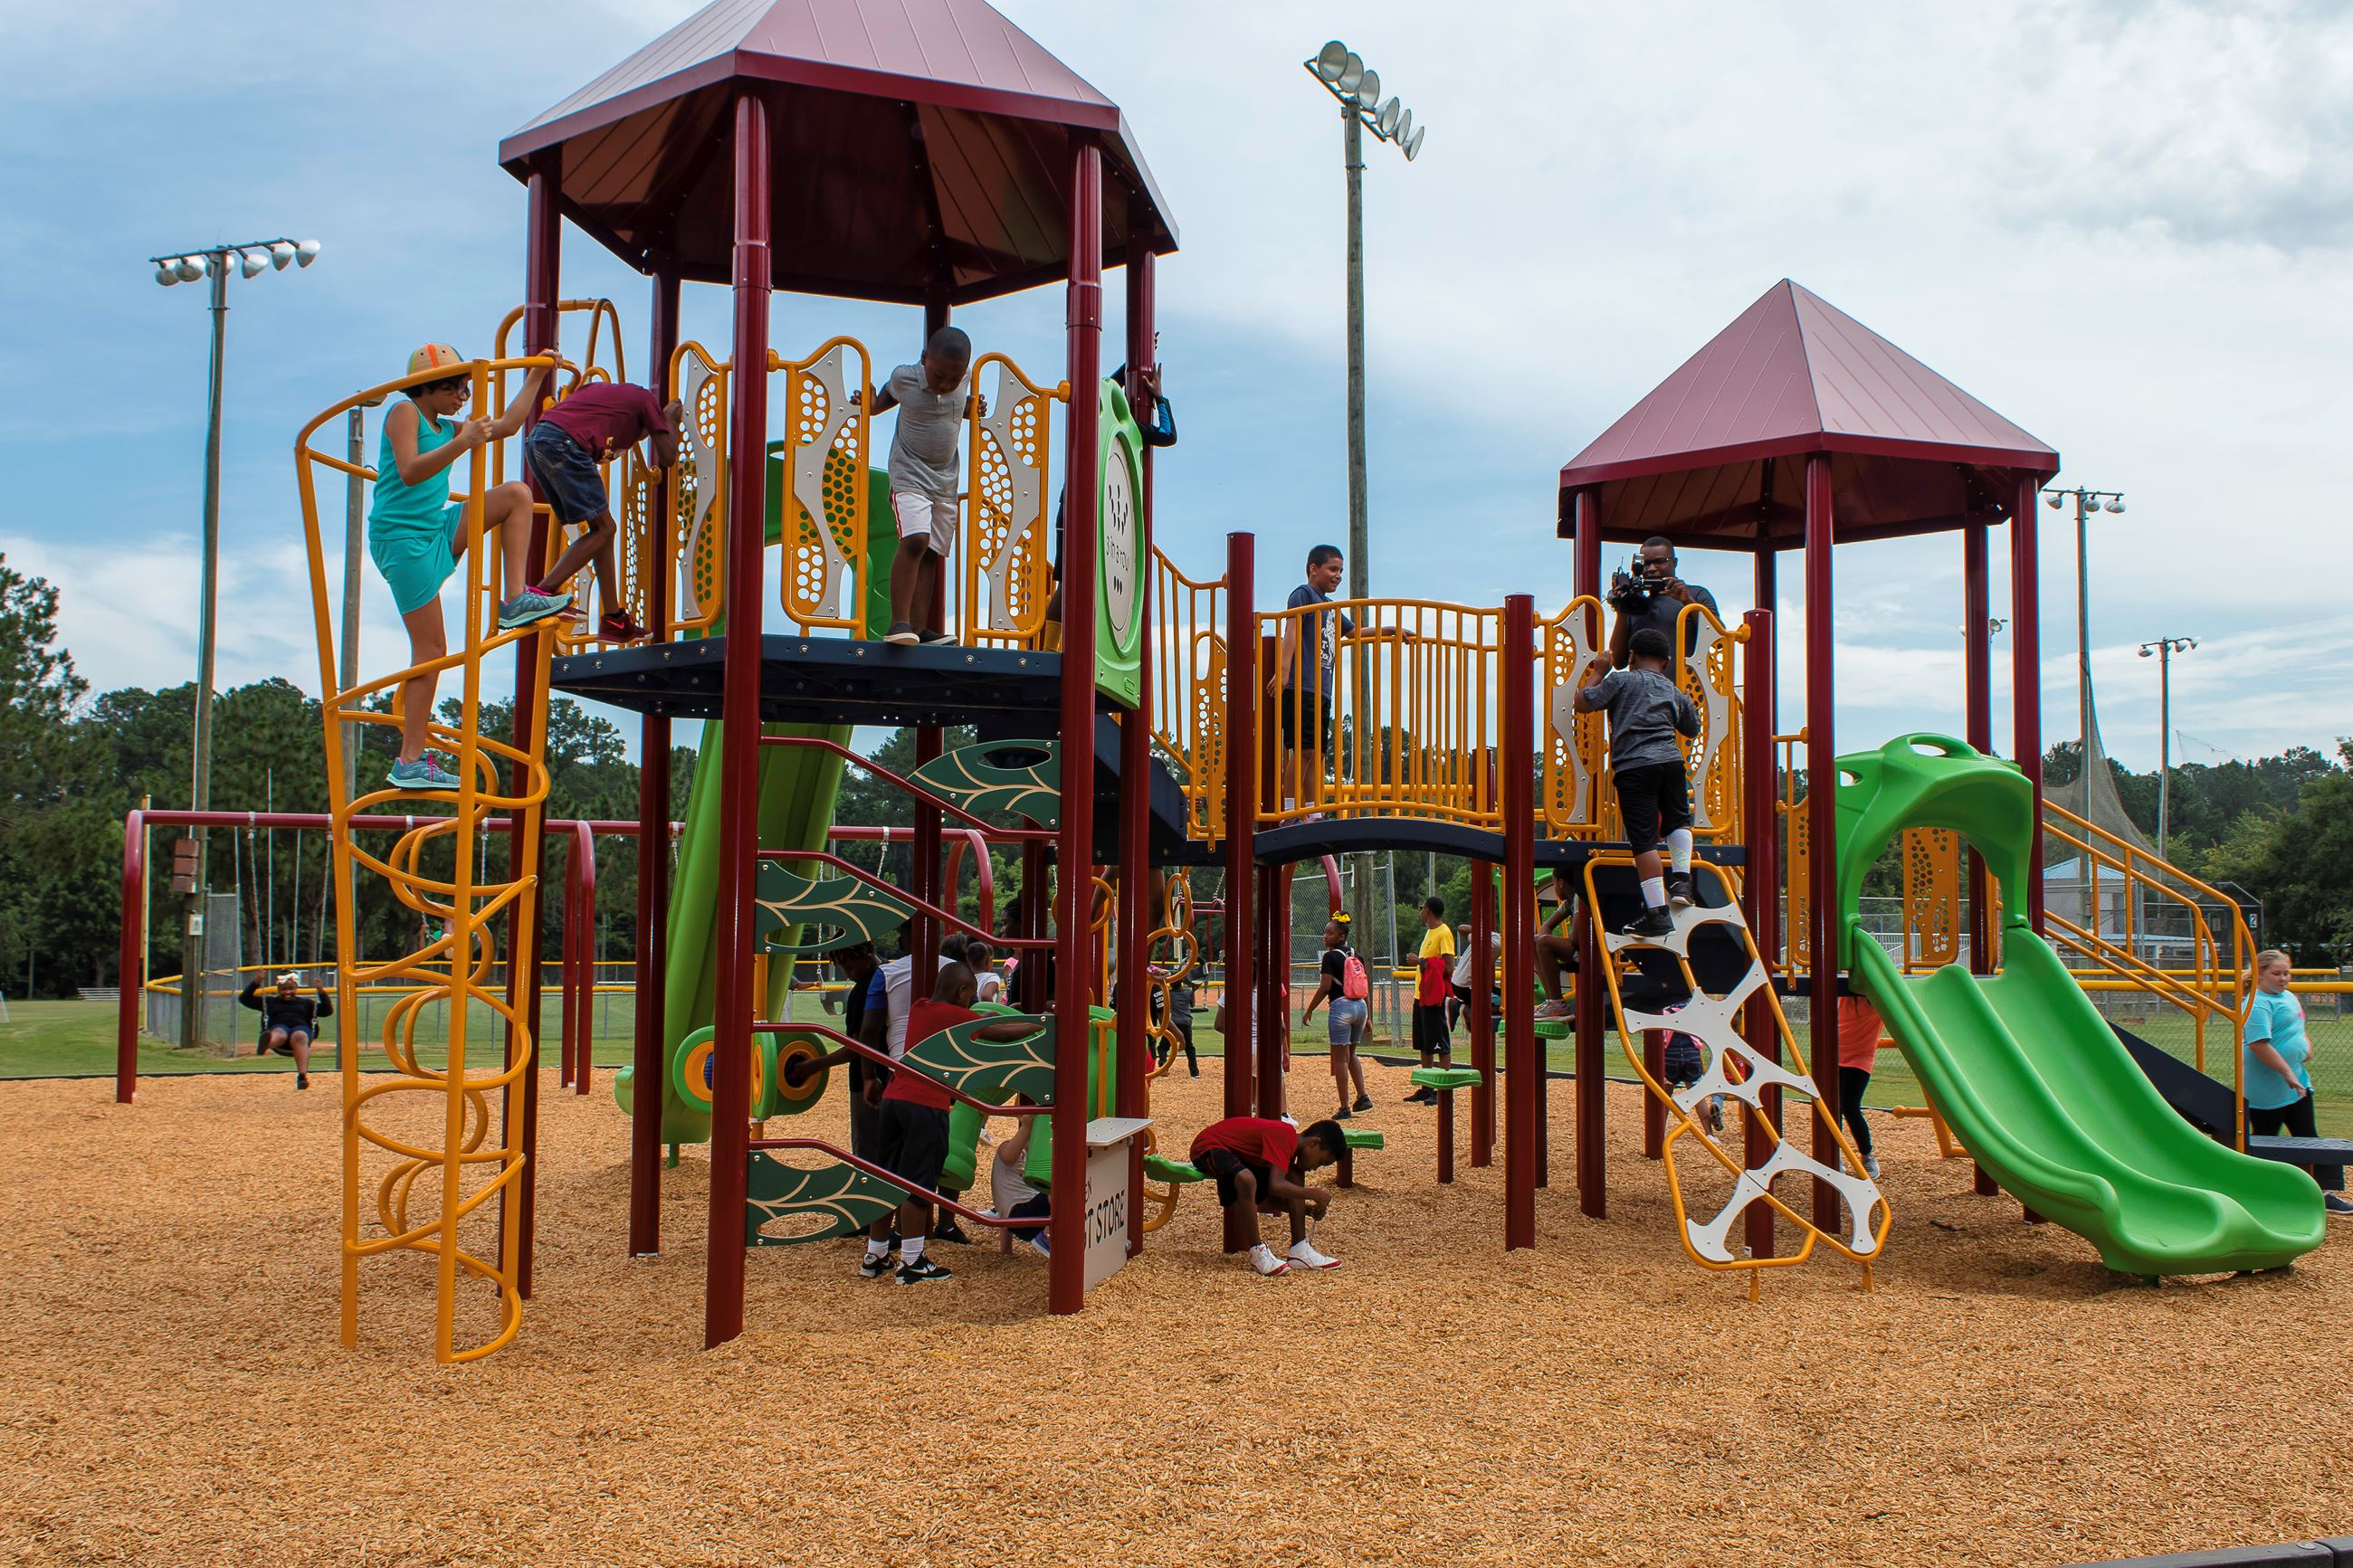 An image of children playing on a large play structure.